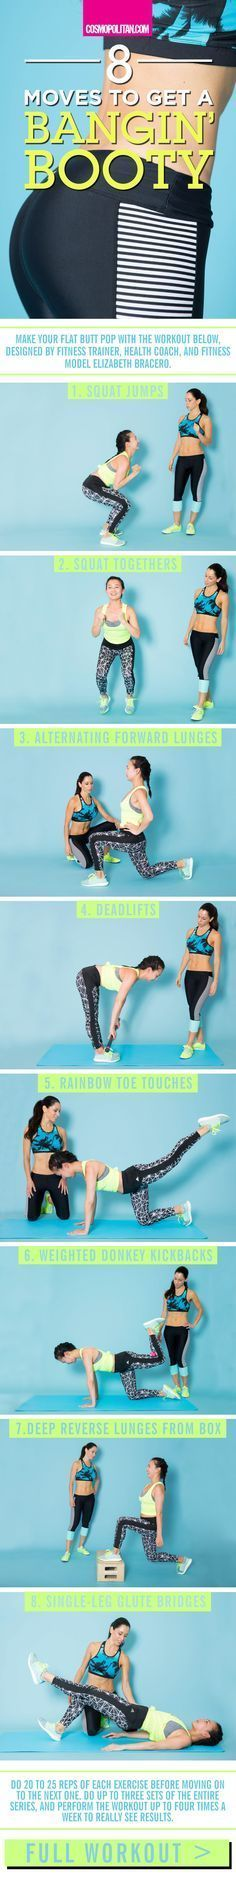 WORKOUT MOVES TO GET A BIGGER ROUNDER BUTT: Give your backside some sexy pop (and strength!) with the workout below designed by fitness trainer health coach and fitness model Elizabeth Bracero. Click through for the full workout and instructional gifs Fitness Workouts, Easy Workouts, At Home Workouts, Fitness Motivation, Butt Workouts, Trainer Fitness, Workout Exercises, Workout Tips, Workout For Beginners